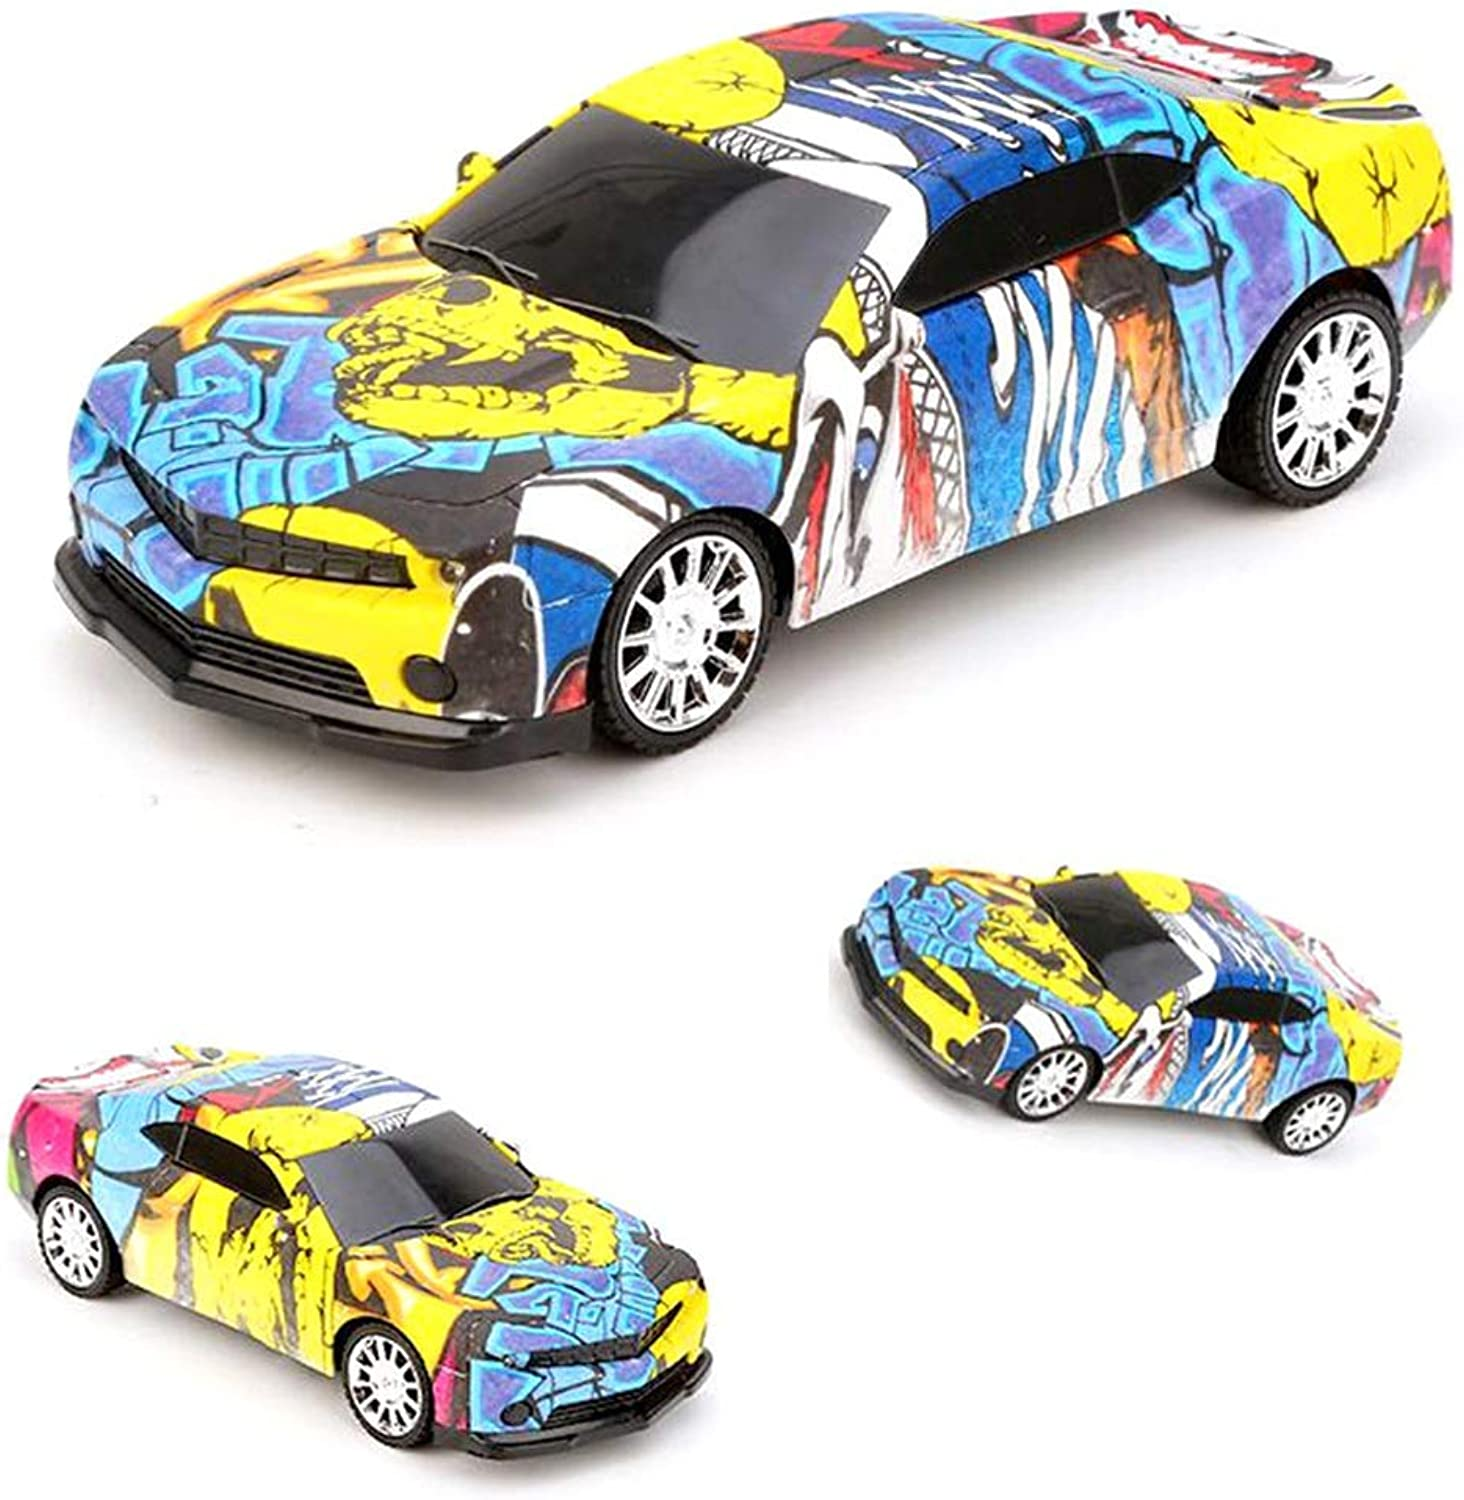 ElevenY New Remote Control Graffiti Car 1 24 4WD 2.4GHz 15KM H High-Speed Racing Vehicle Off-Road Drift RC Car Radio Control Car for Kids Adults Hobby Toys Gift(Random Style)